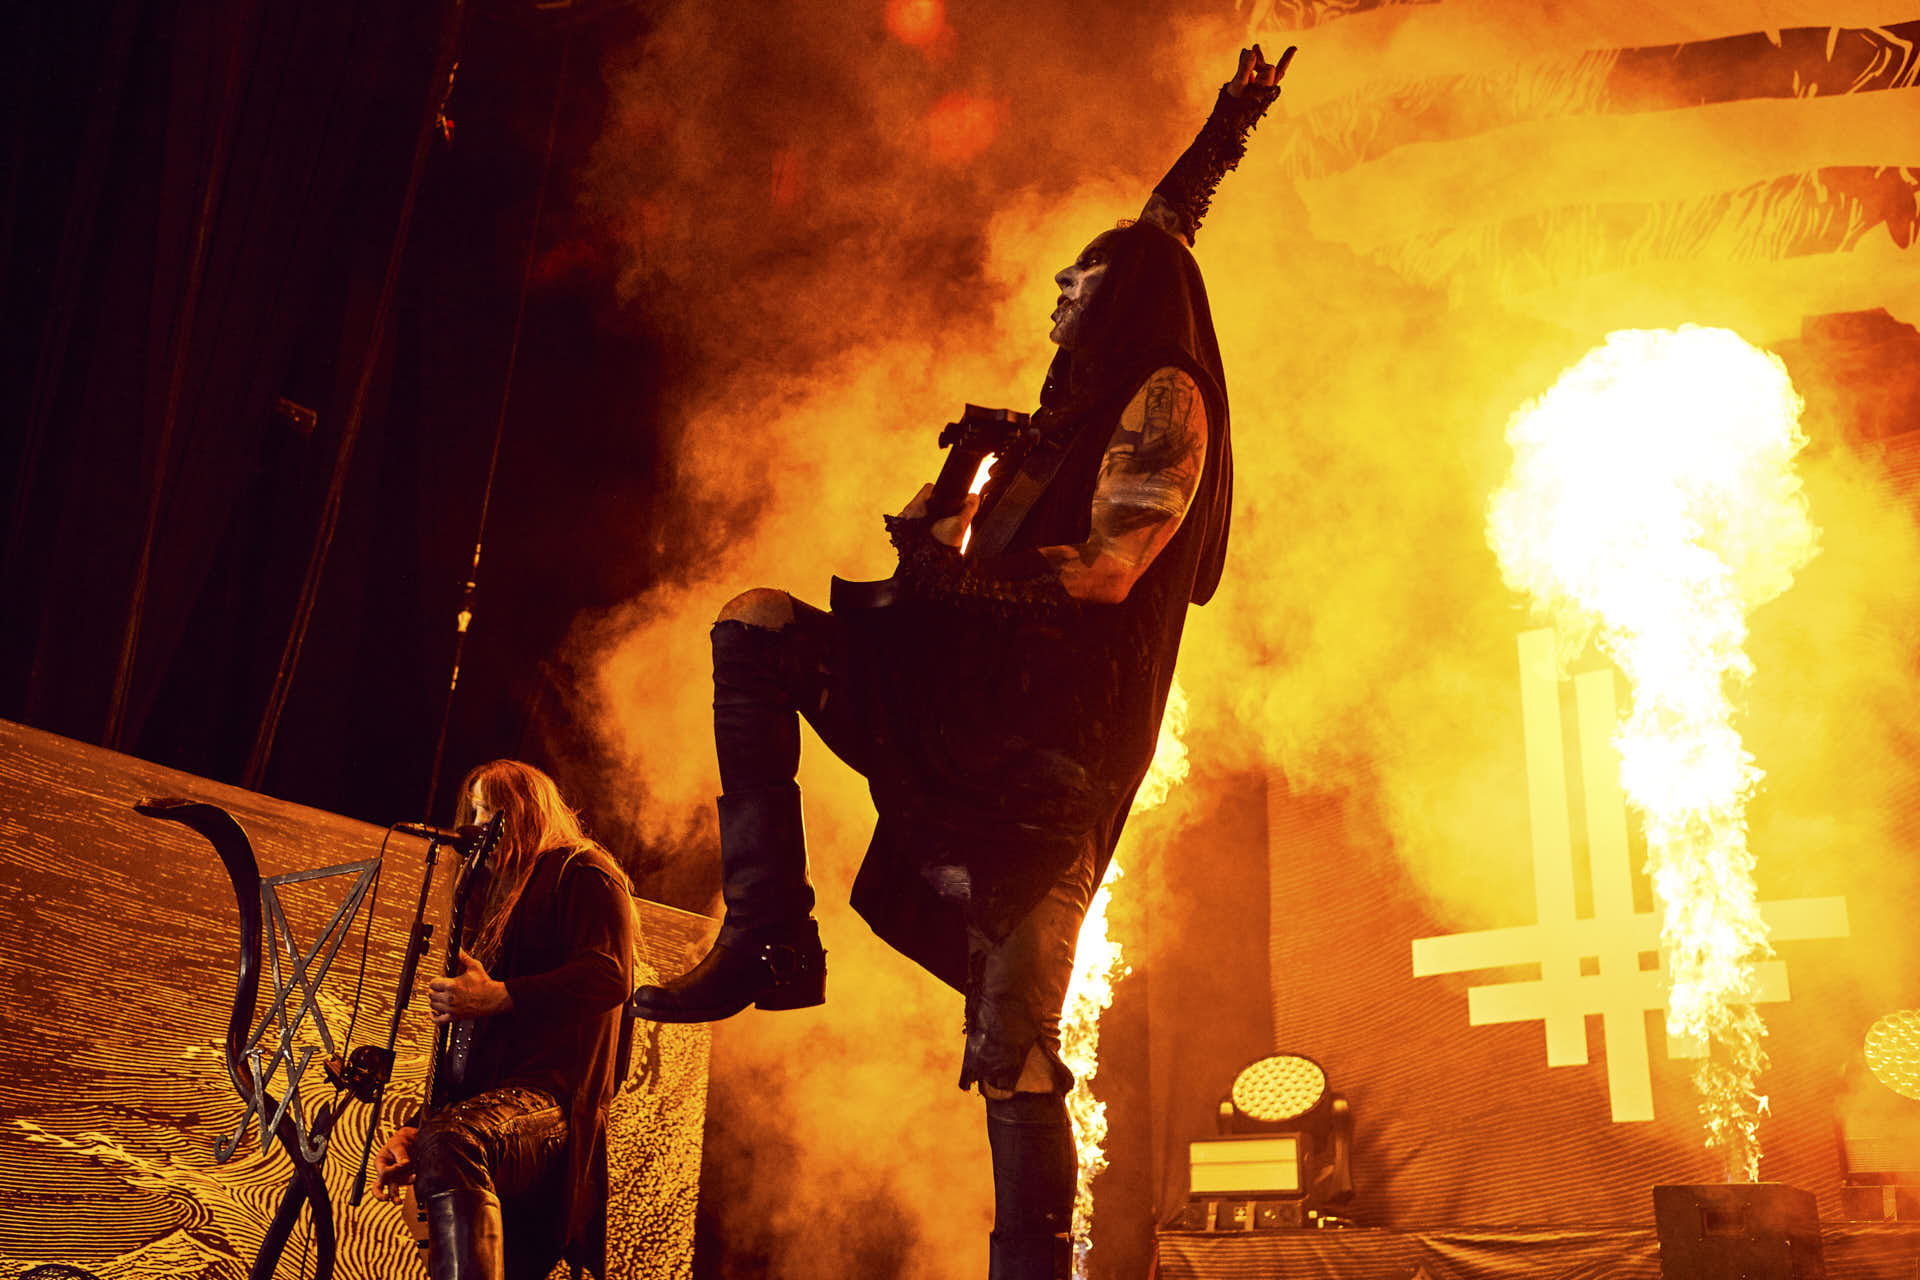 Behemoth performing at the Xnfinity Center with a fire tower by Boston based photographer Greg Caparell